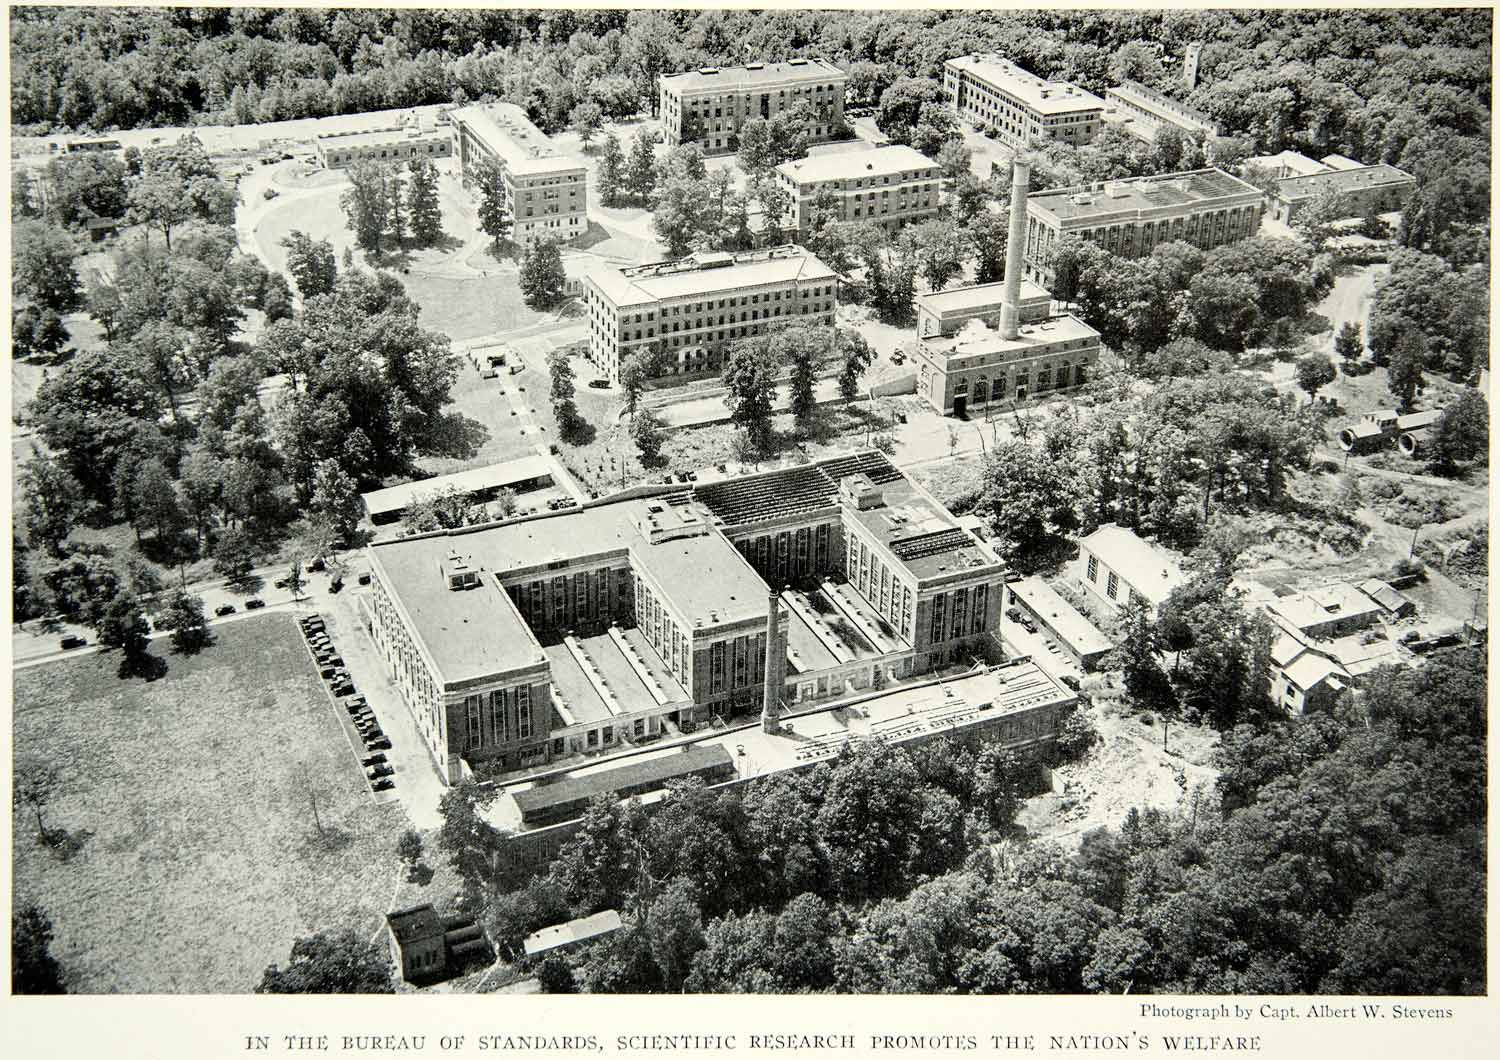 1931 Print Bureau of Standards Scientific Research Building Aerial View NGM8